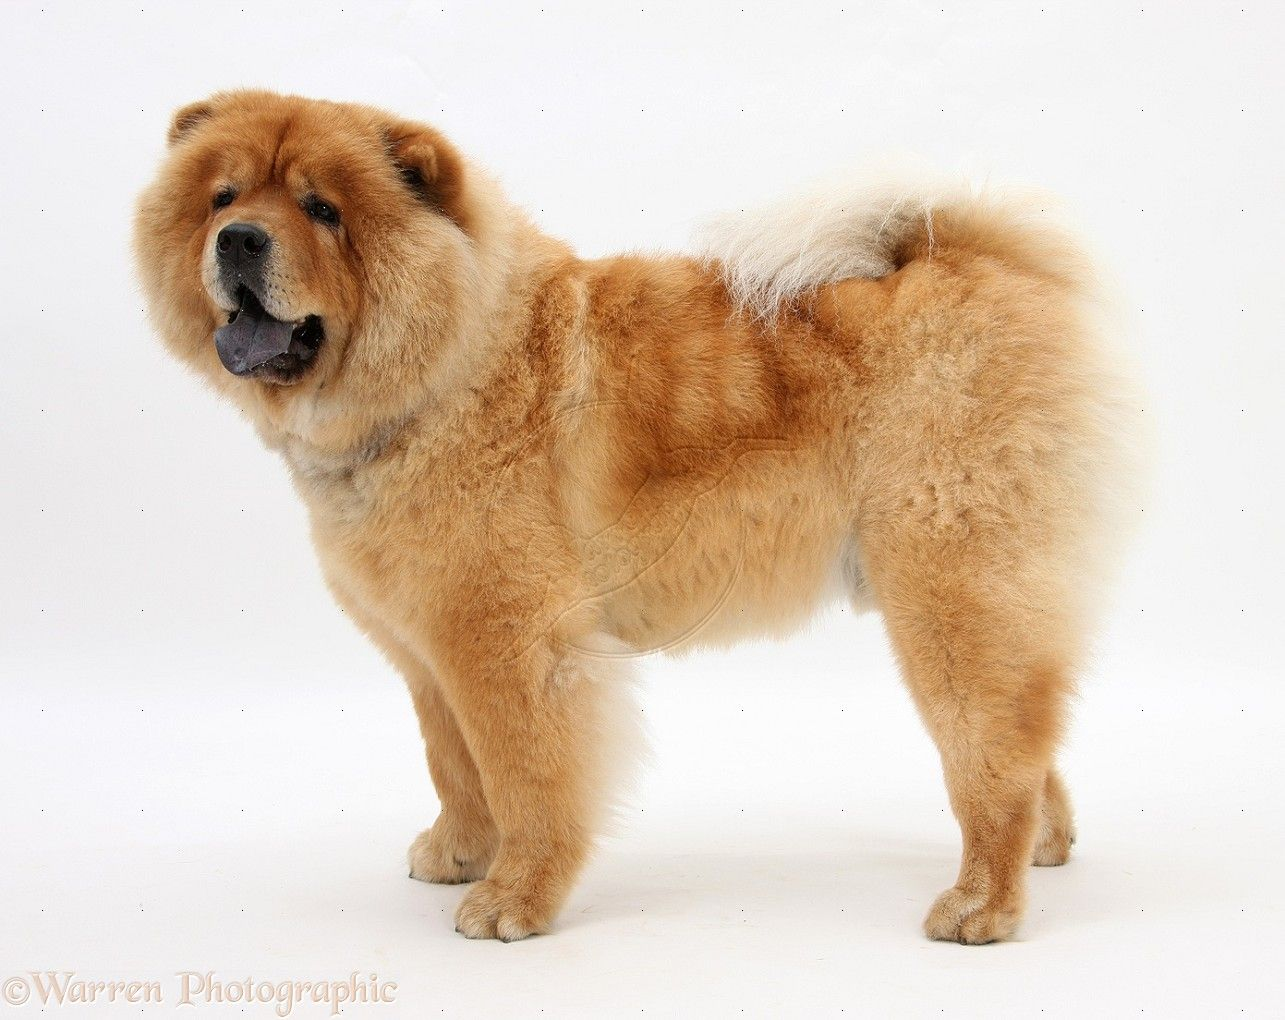 Chow Chow Dog Wallpapers Chow Chow Dogs Dogs Dog Photos